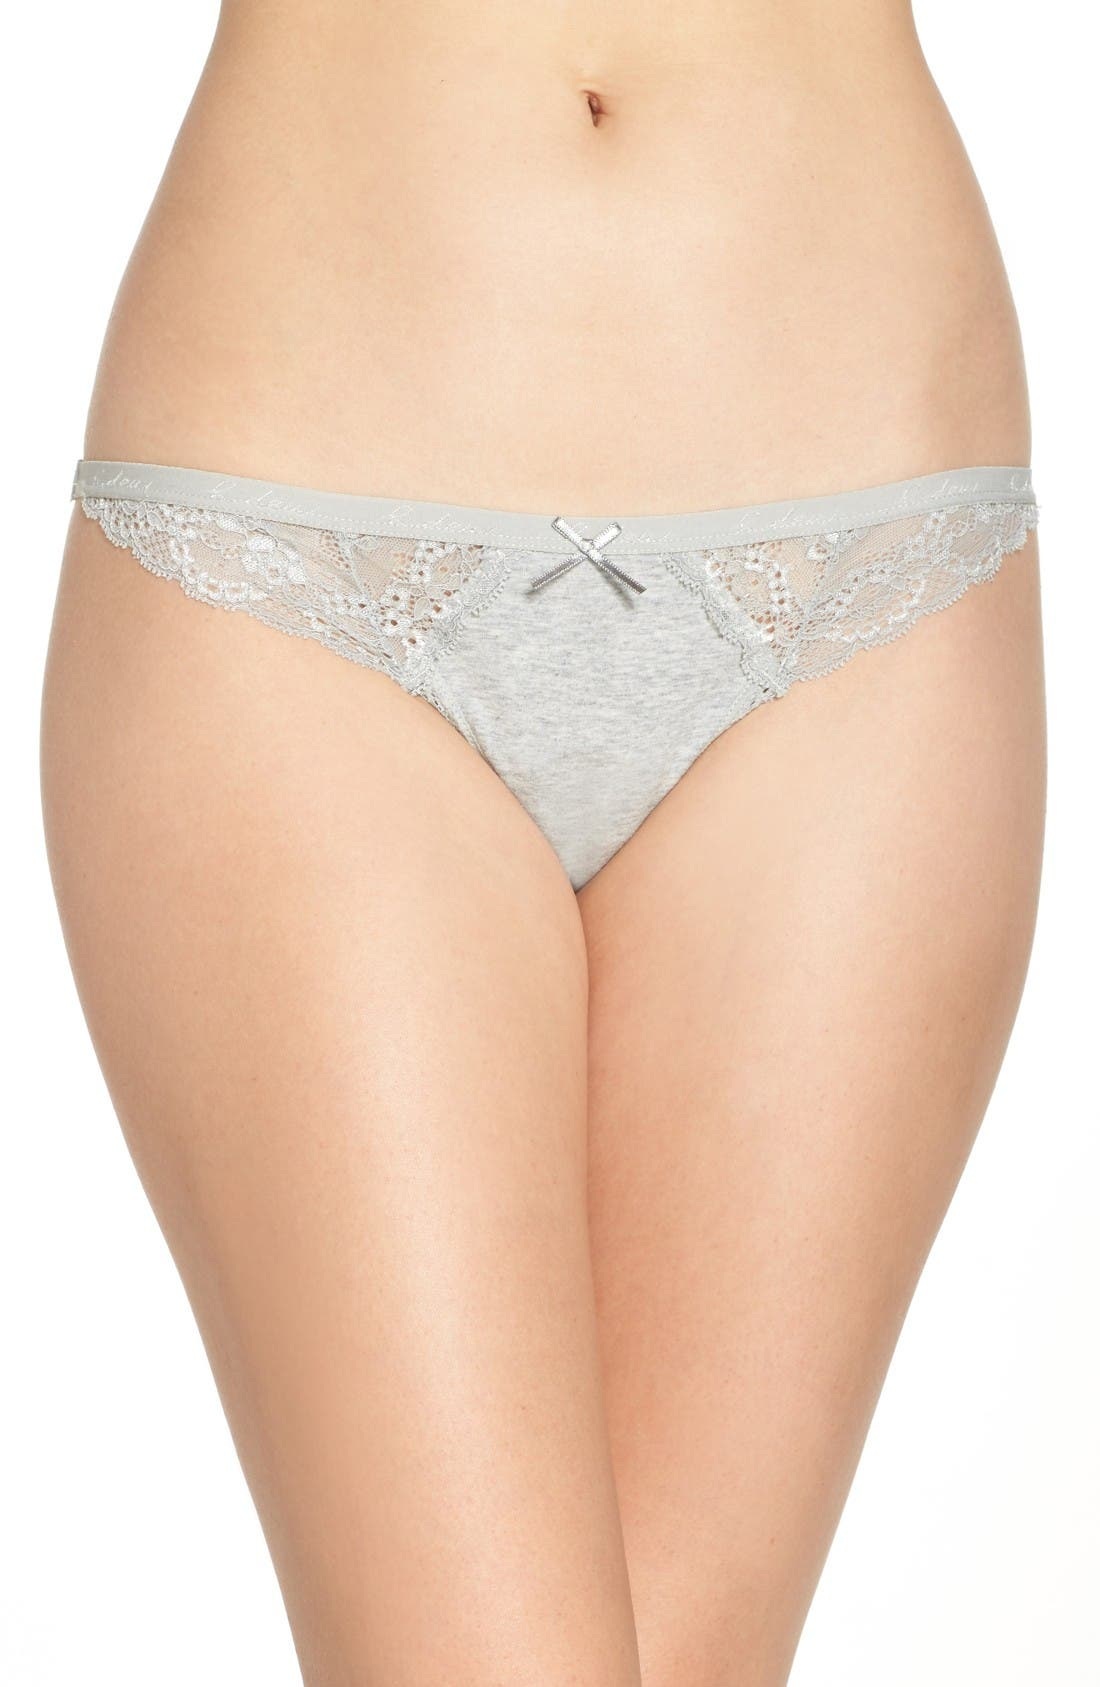 h.dew Jessi Thong (5 for $30)